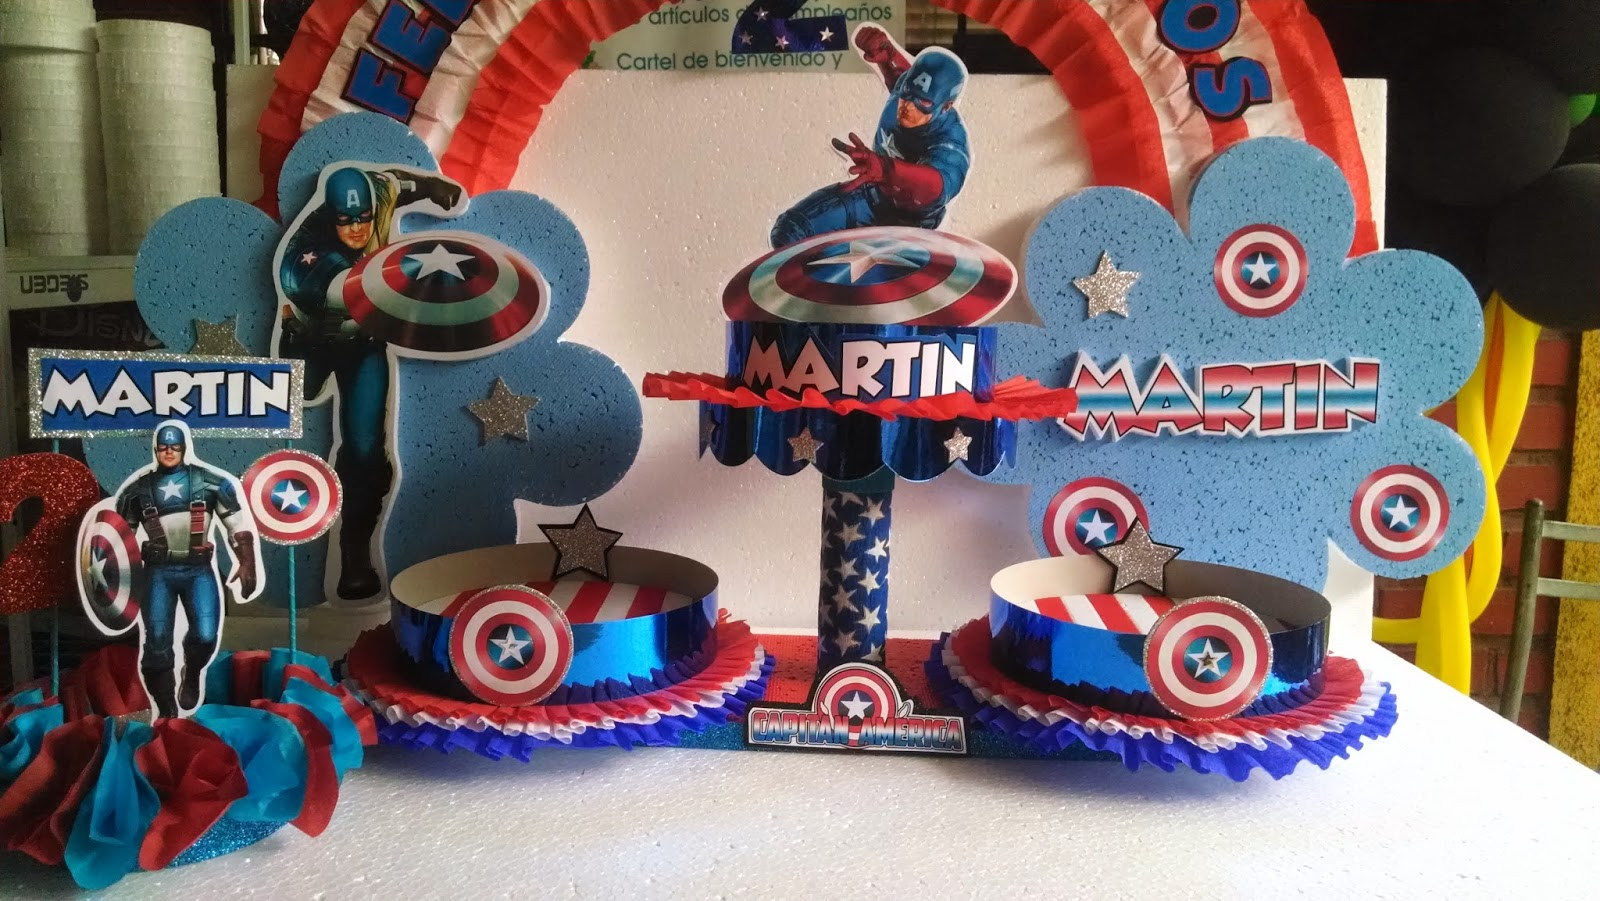 Decoracion de pared capitan america para fiestas - Decoraciones de paredes ...